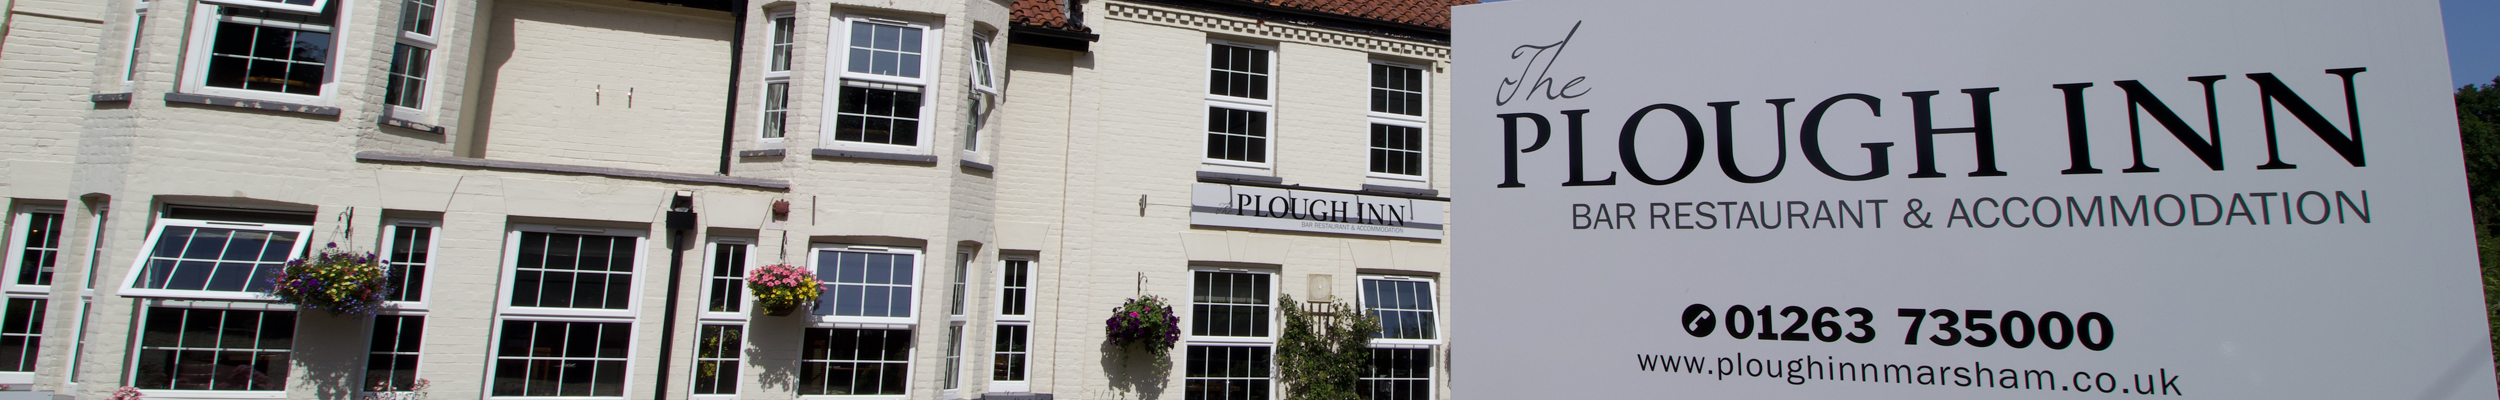 What To Do // Exterior shot of the Plough Inn Bar, Restaurant & Accommodation